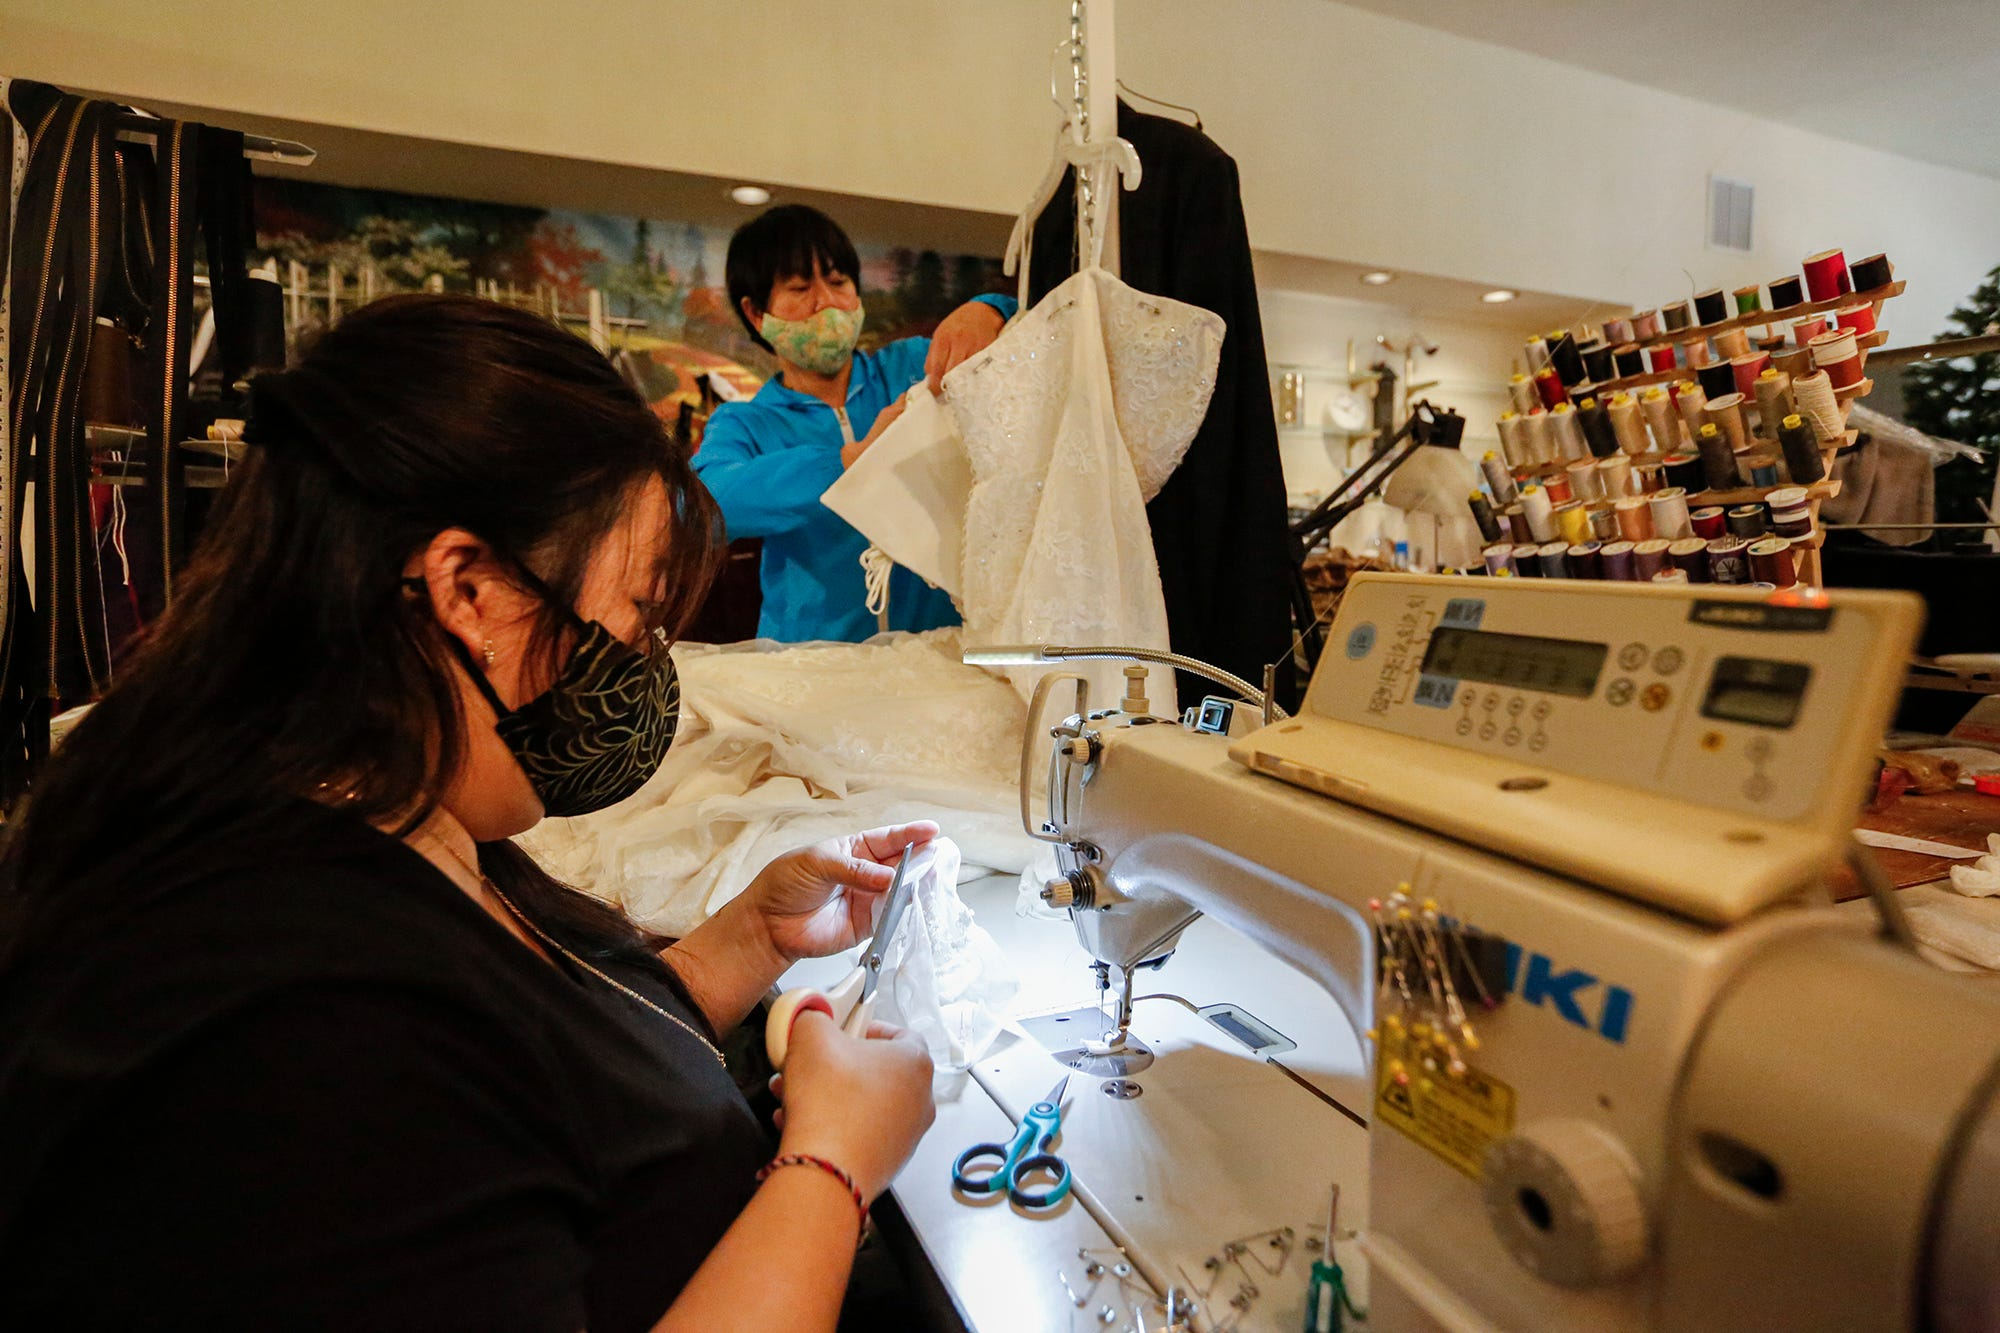 Bao and Soua Xiong of S&B Alterations work on dresses  at their shop at 47 S. Main Street in Fond du Lac. The business has been inundated with a backlog of wedding dress alterations that were previously on hold because of COVID-19 restrictions.